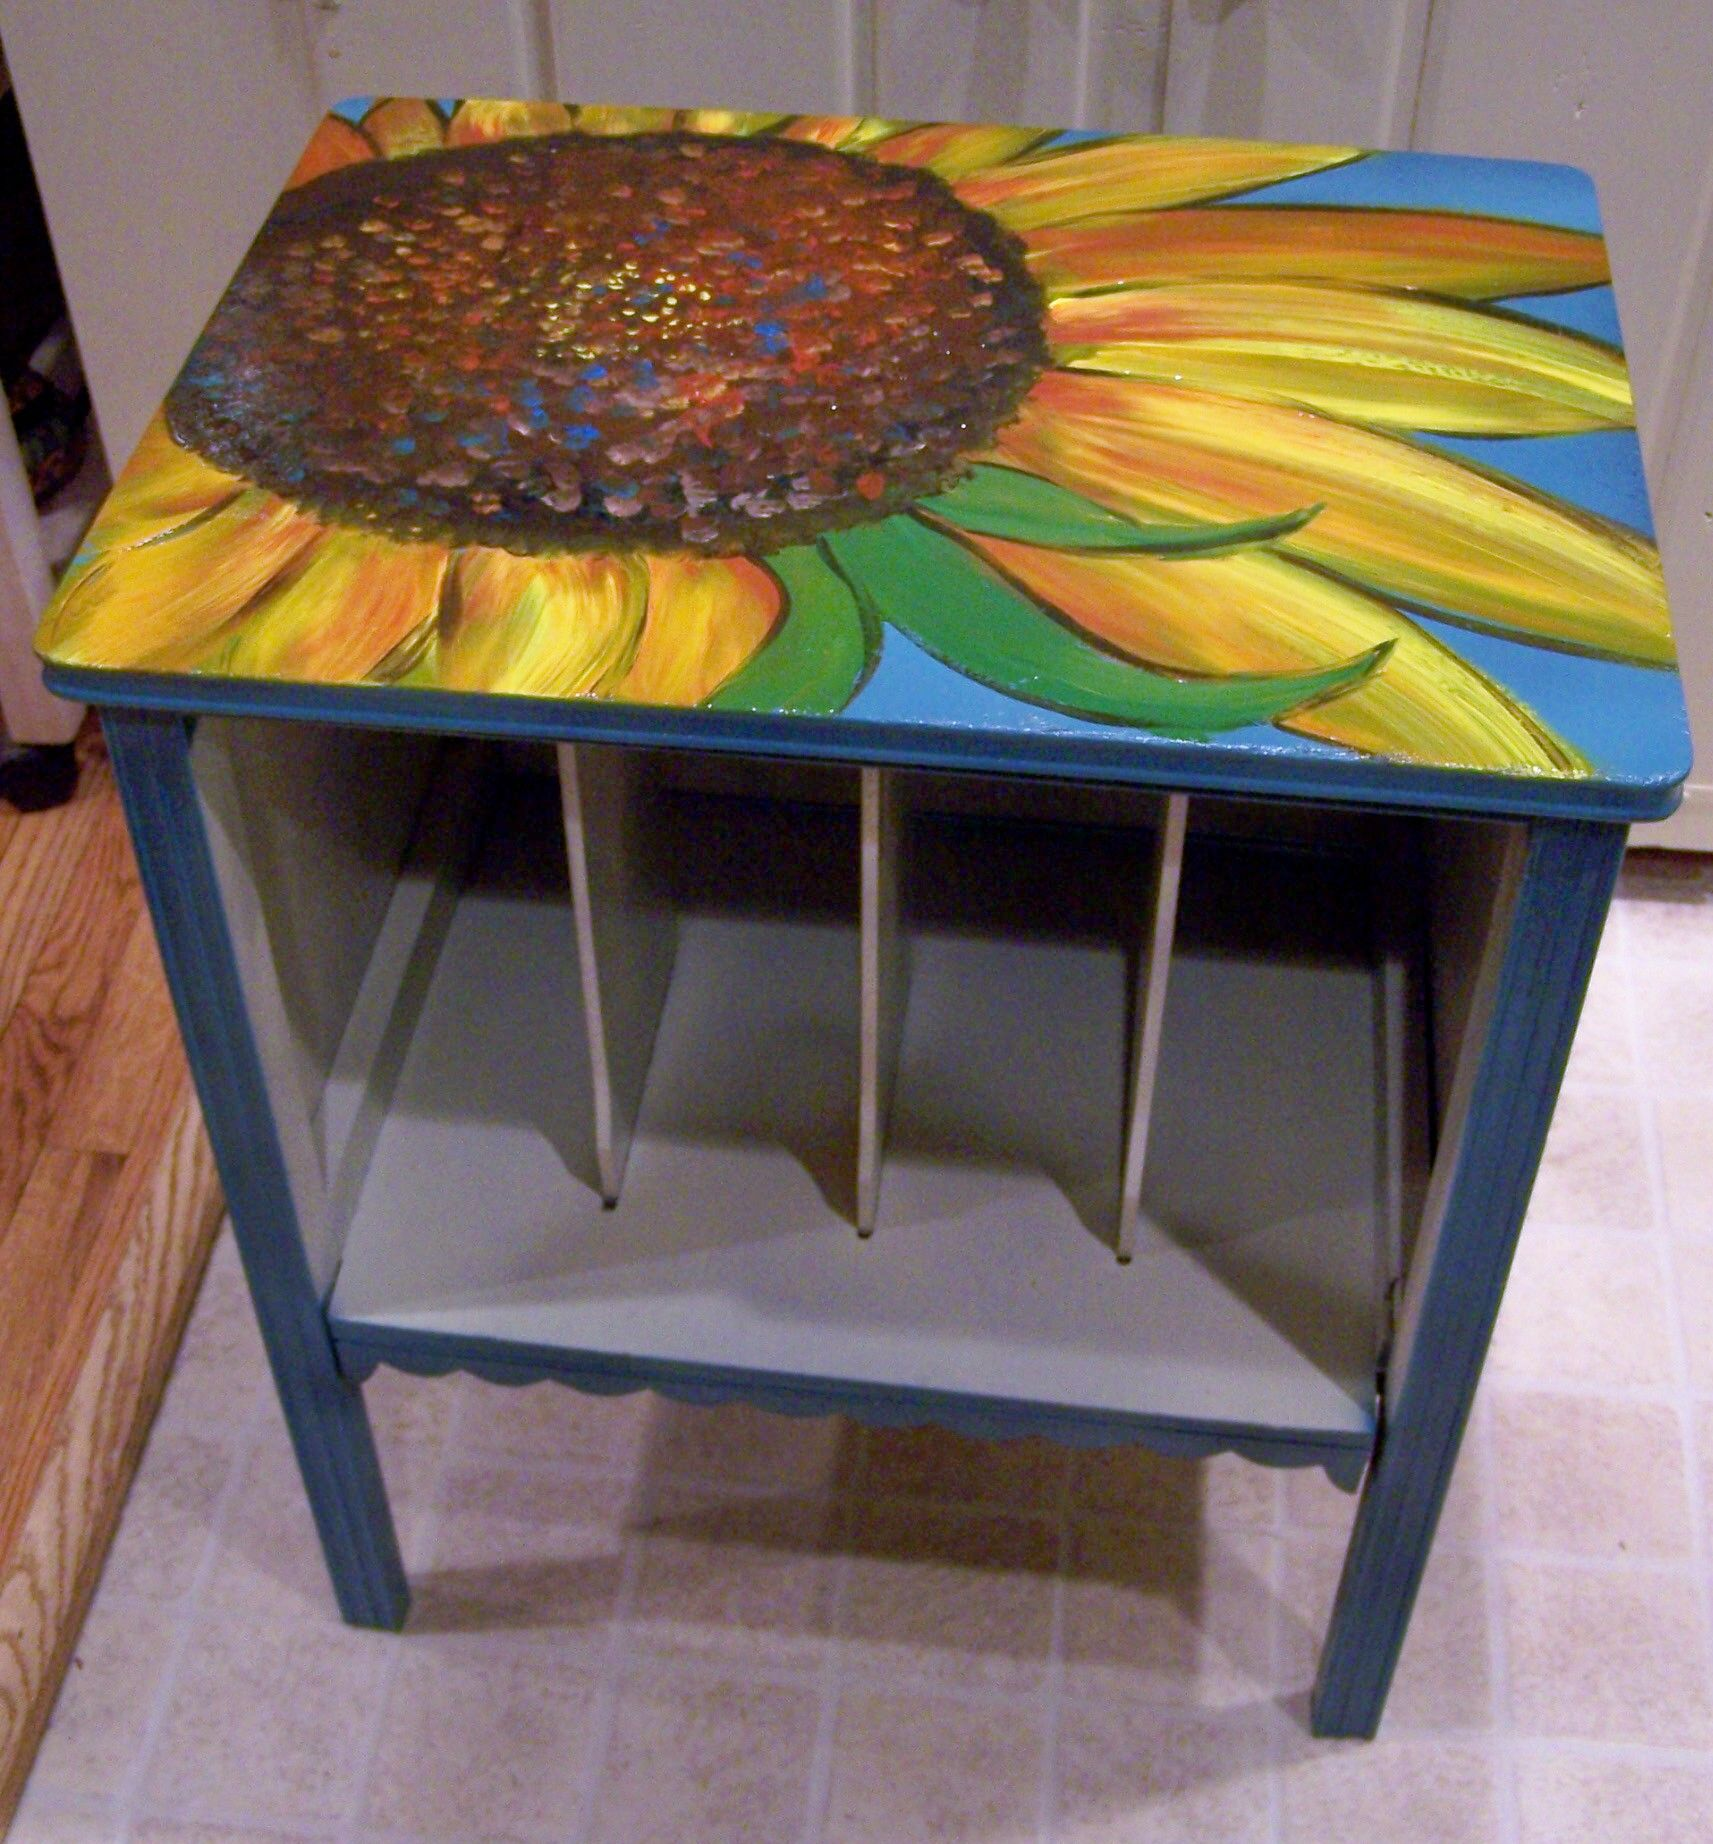 Painting furniture designs - Pinterest Painting Furniture Ideas Experimenting With Different Designs And Ideas For Painted